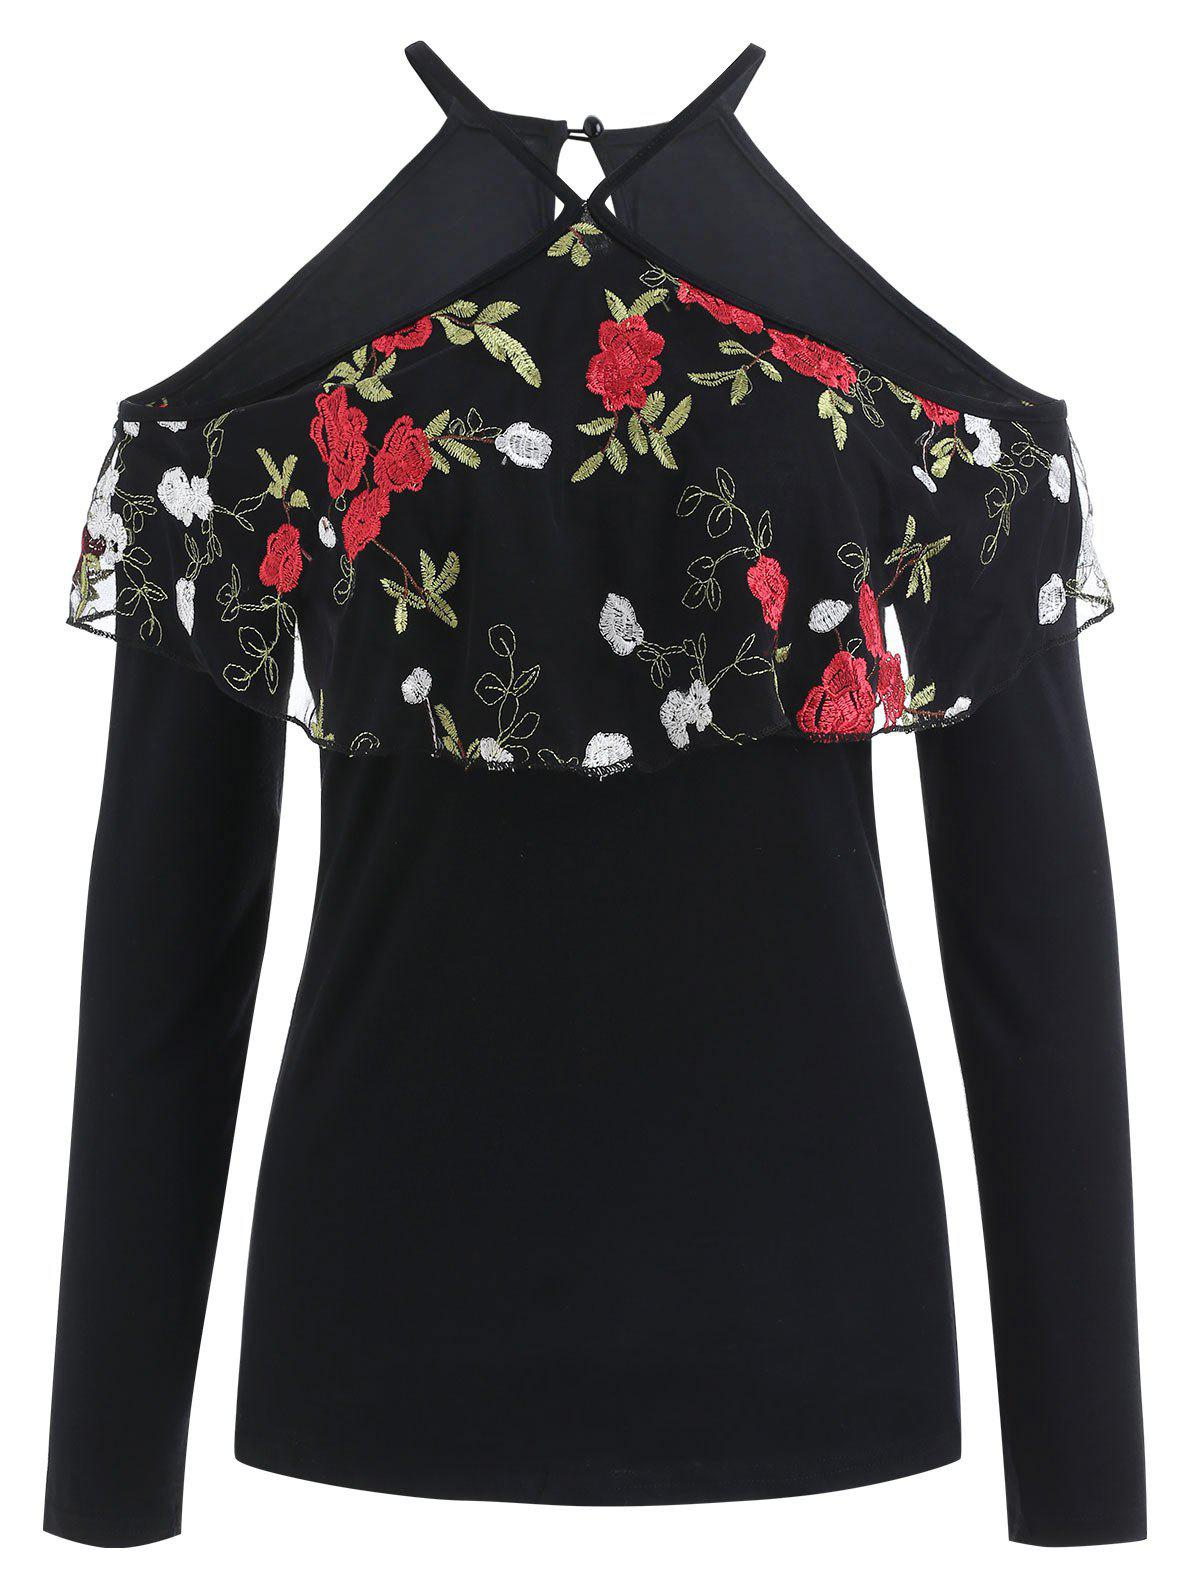 Shop Floral Embroidery Flounce Cold Shoulder Top